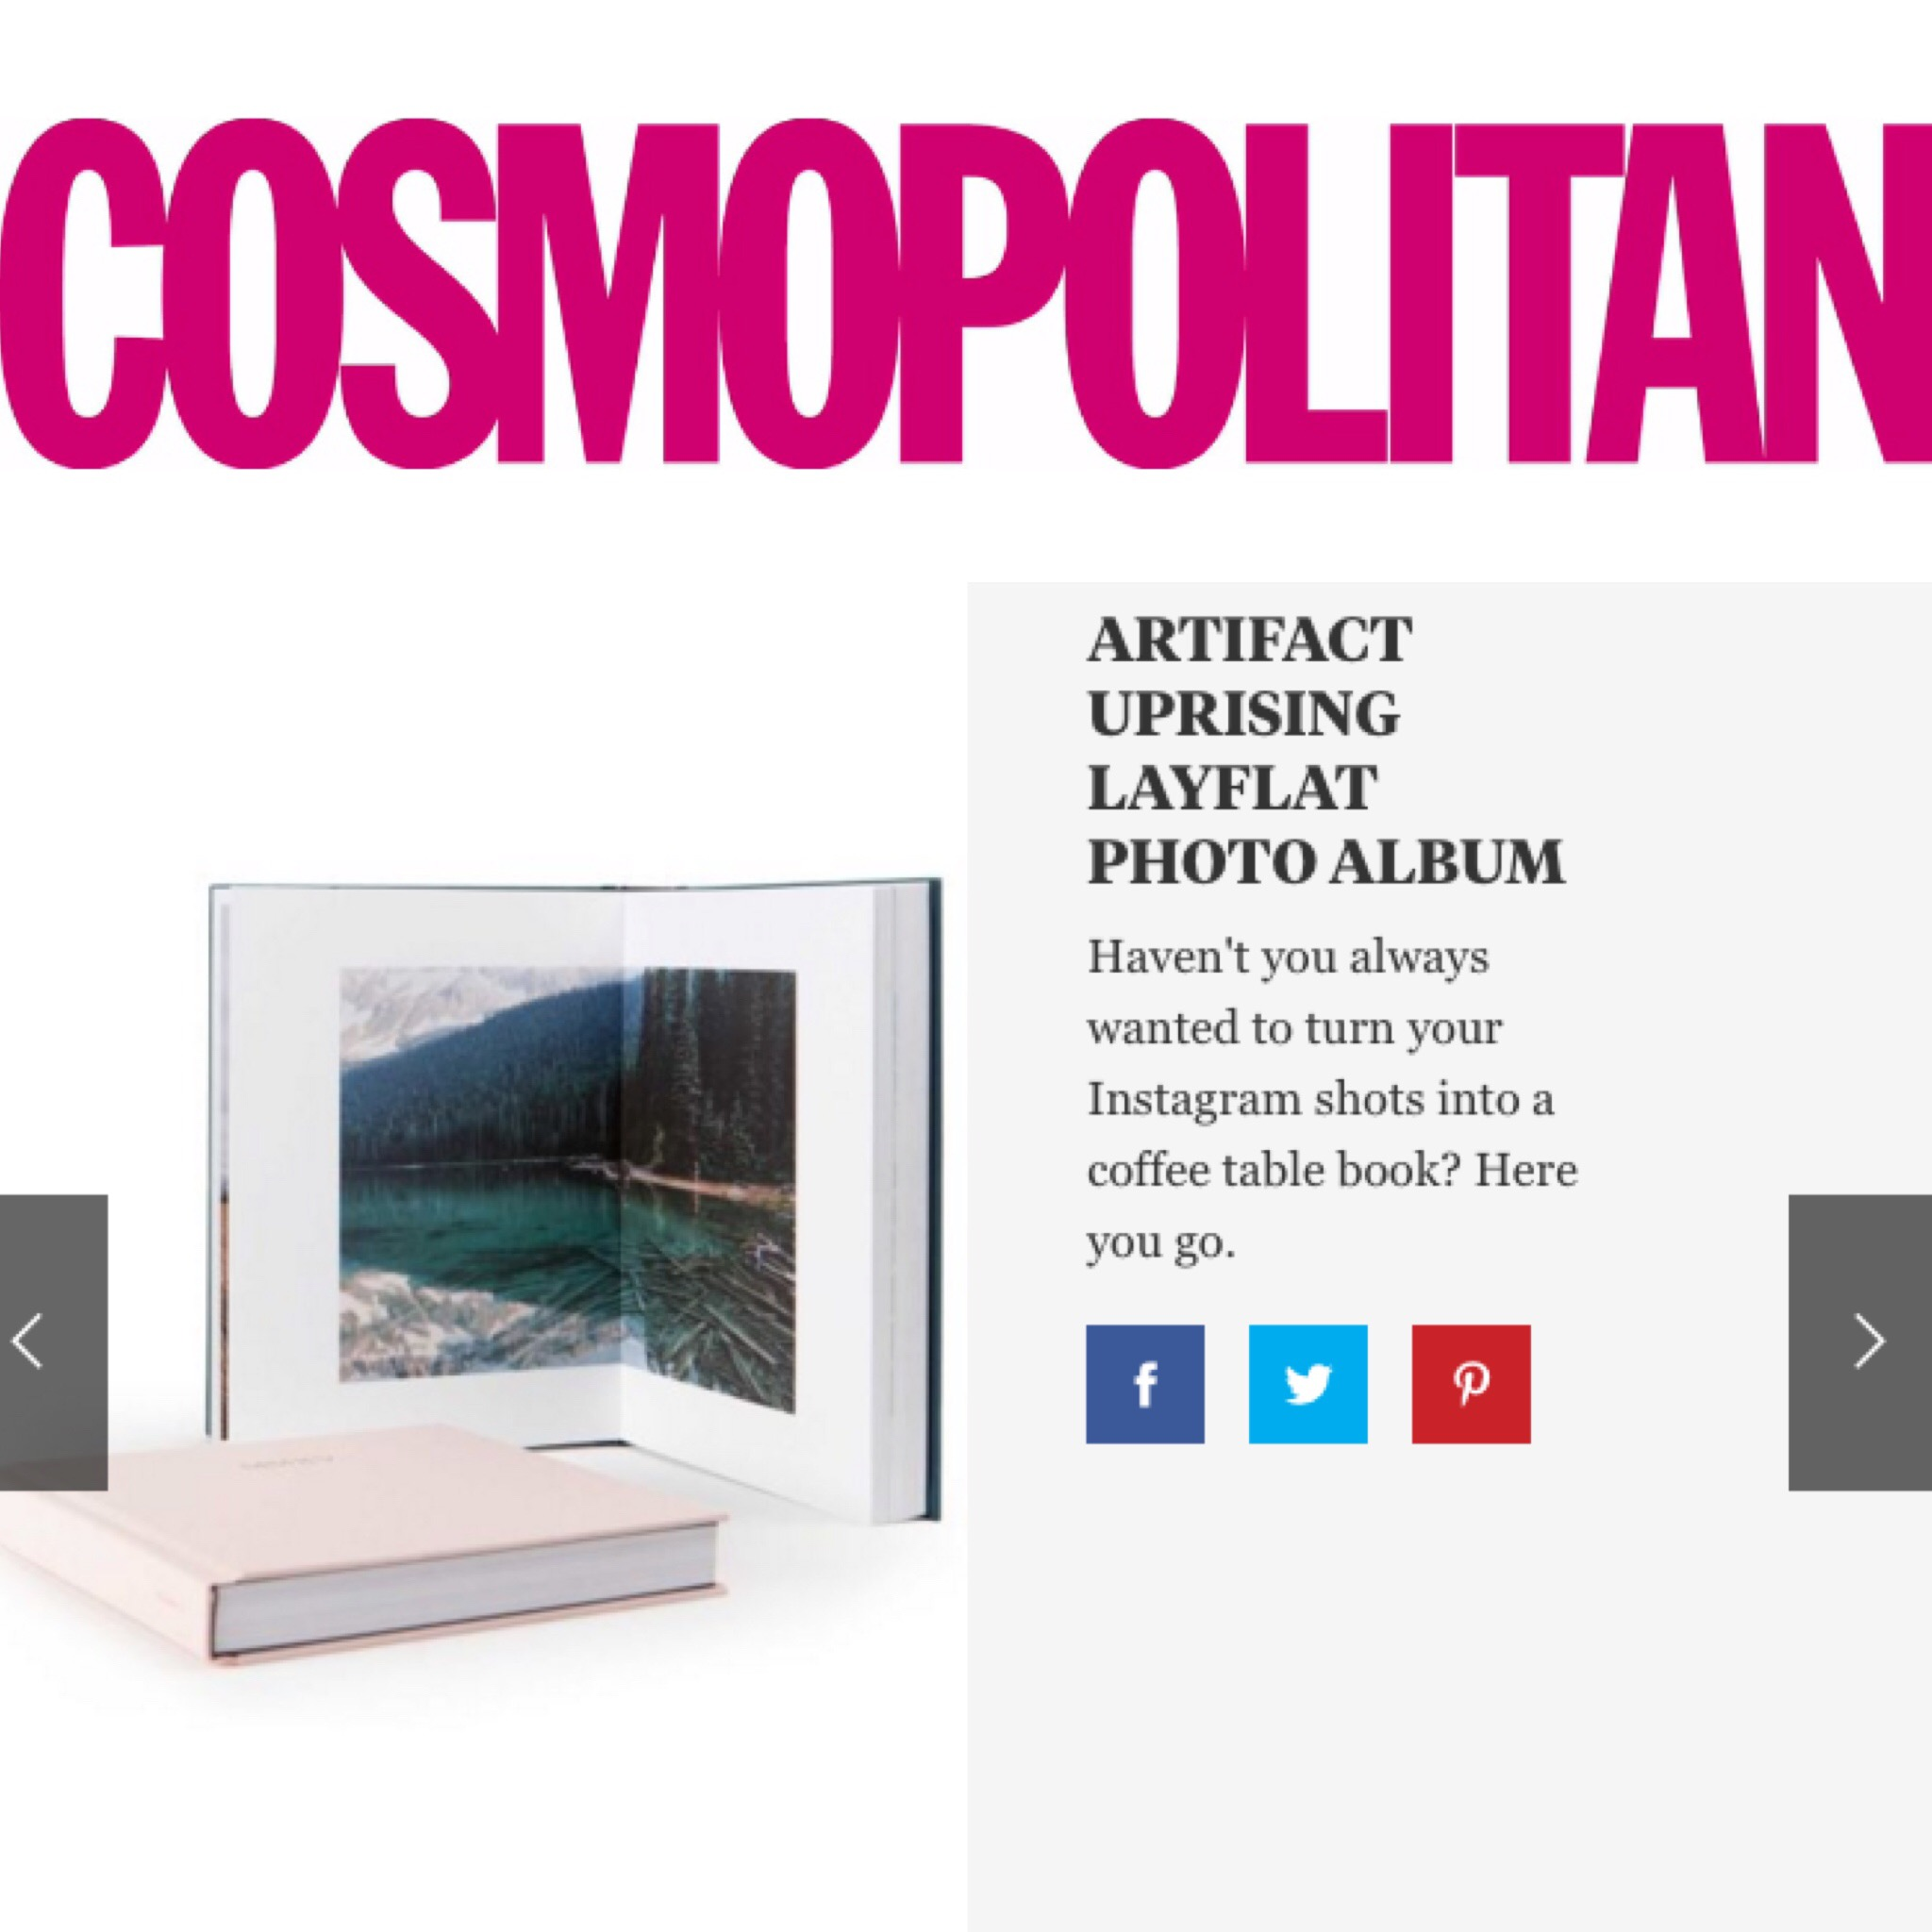 Artifact Uprising Layflat Album on Cosmopolitan Gift Guide